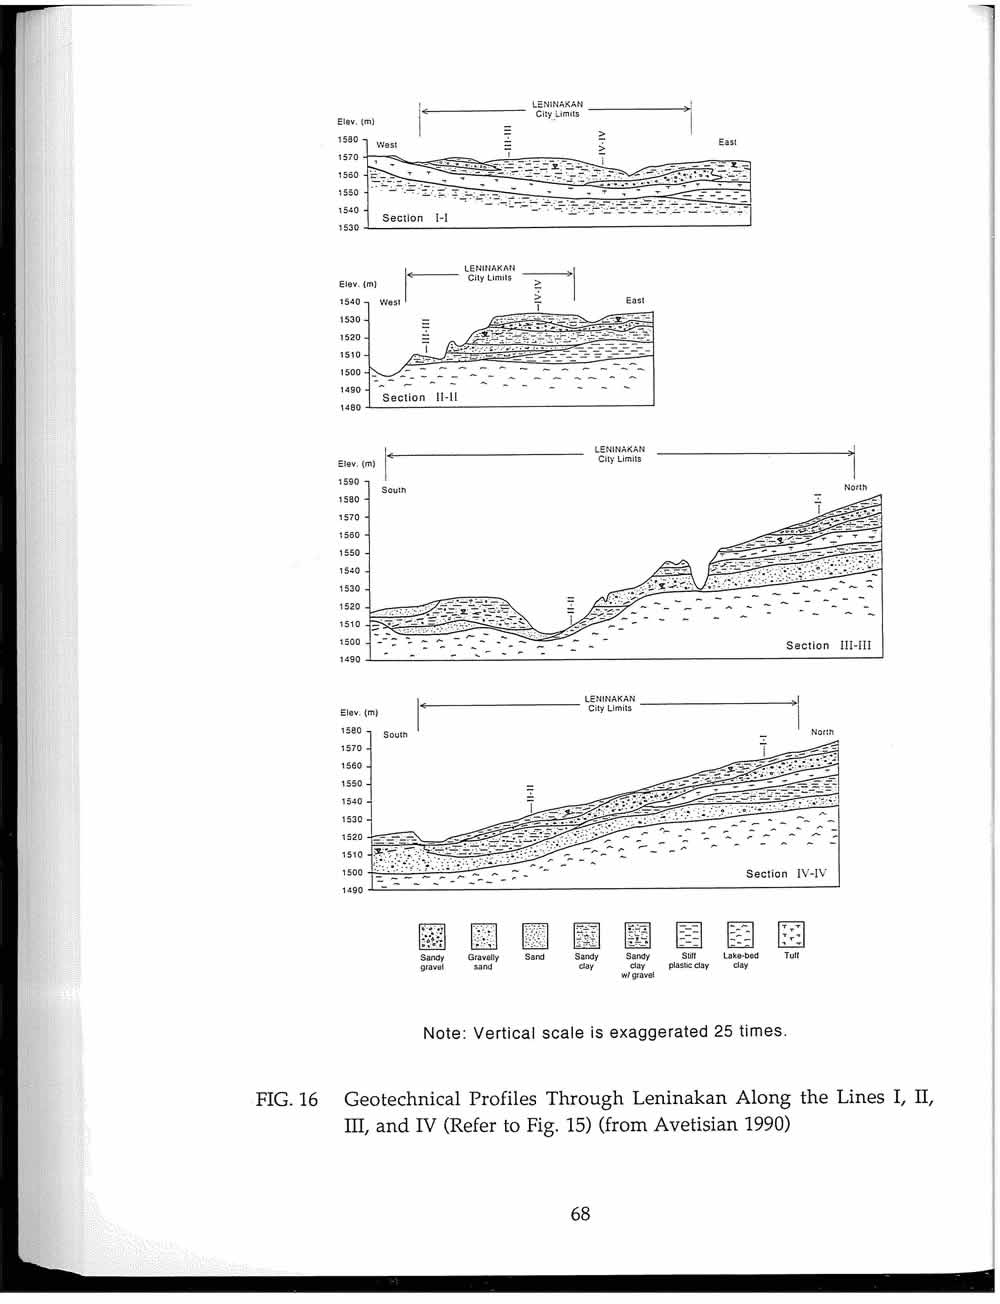 Geotechnical Profiles Through Leninakan along the Lines I, II, III, and IV (refer to photo 3) (Yegain and Ghahraman, 1992).